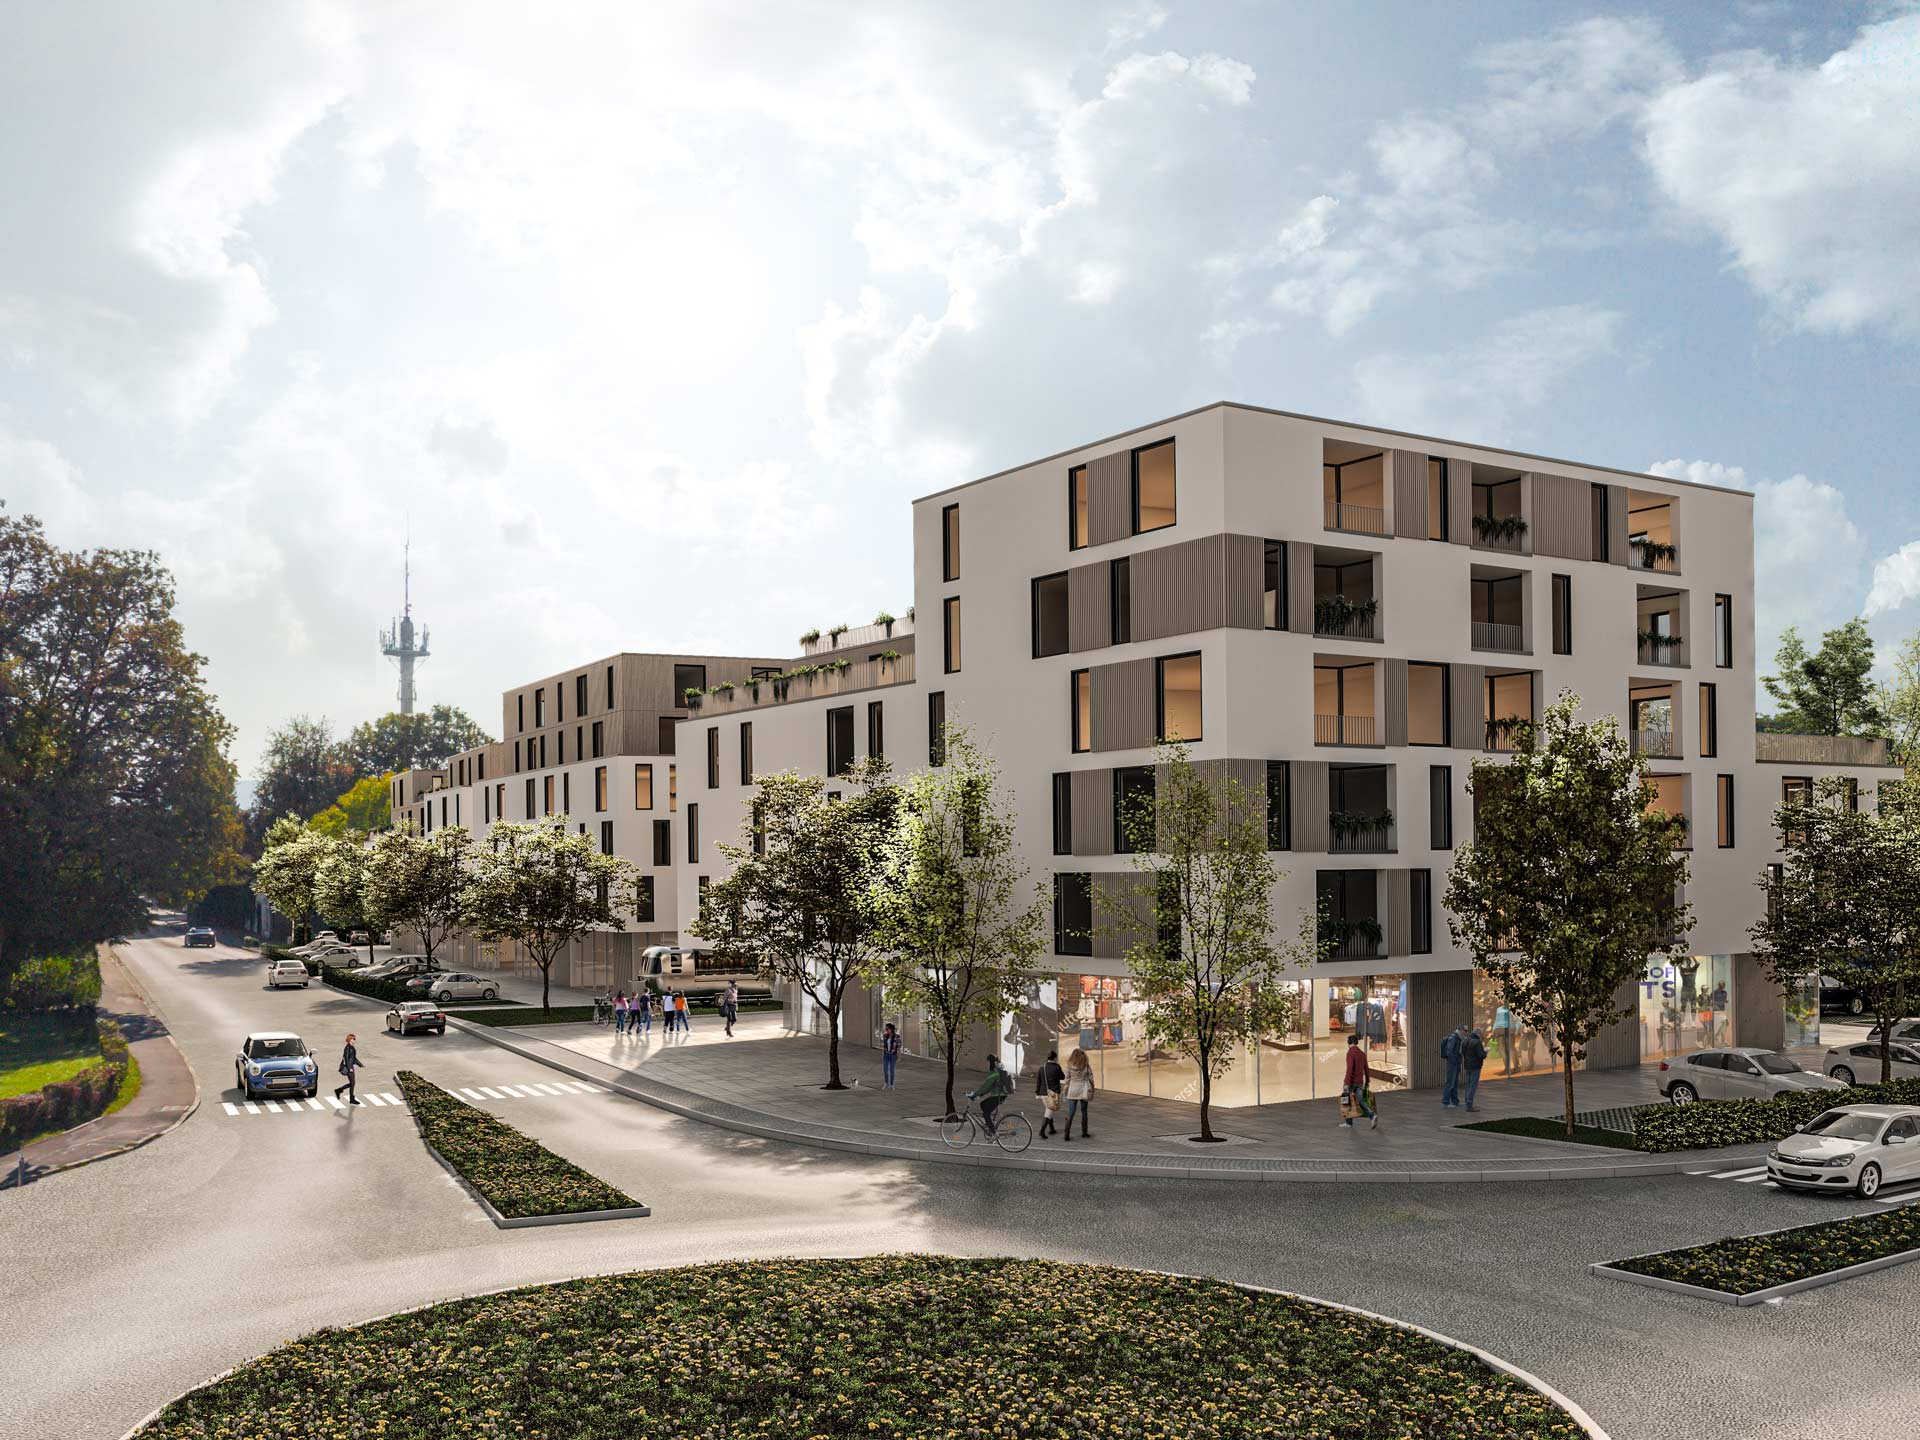 Westend Buildings for Mixed Use